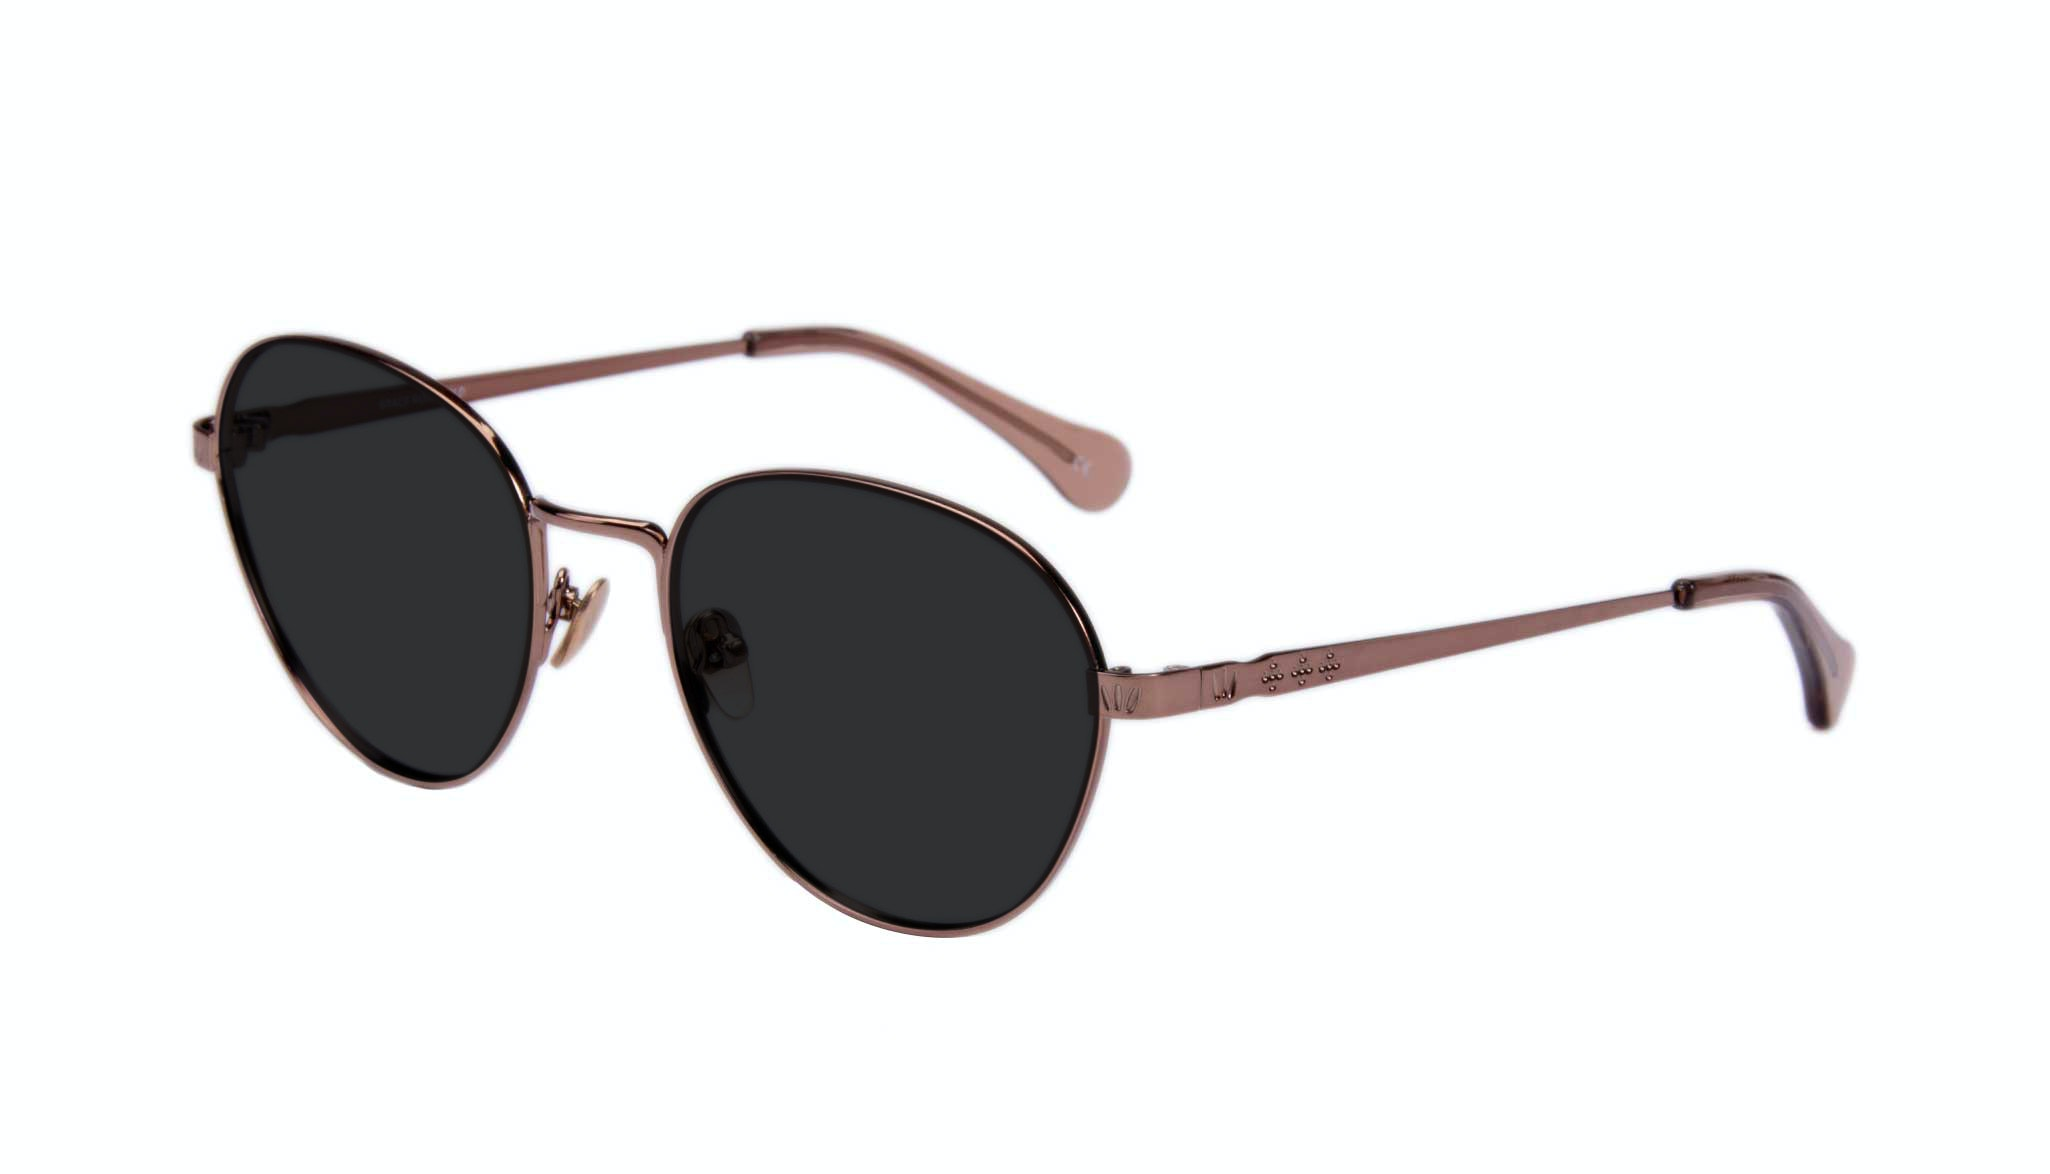 Affordable Fashion Glasses Round Sunglasses Women Brace Rose Gold Tilt